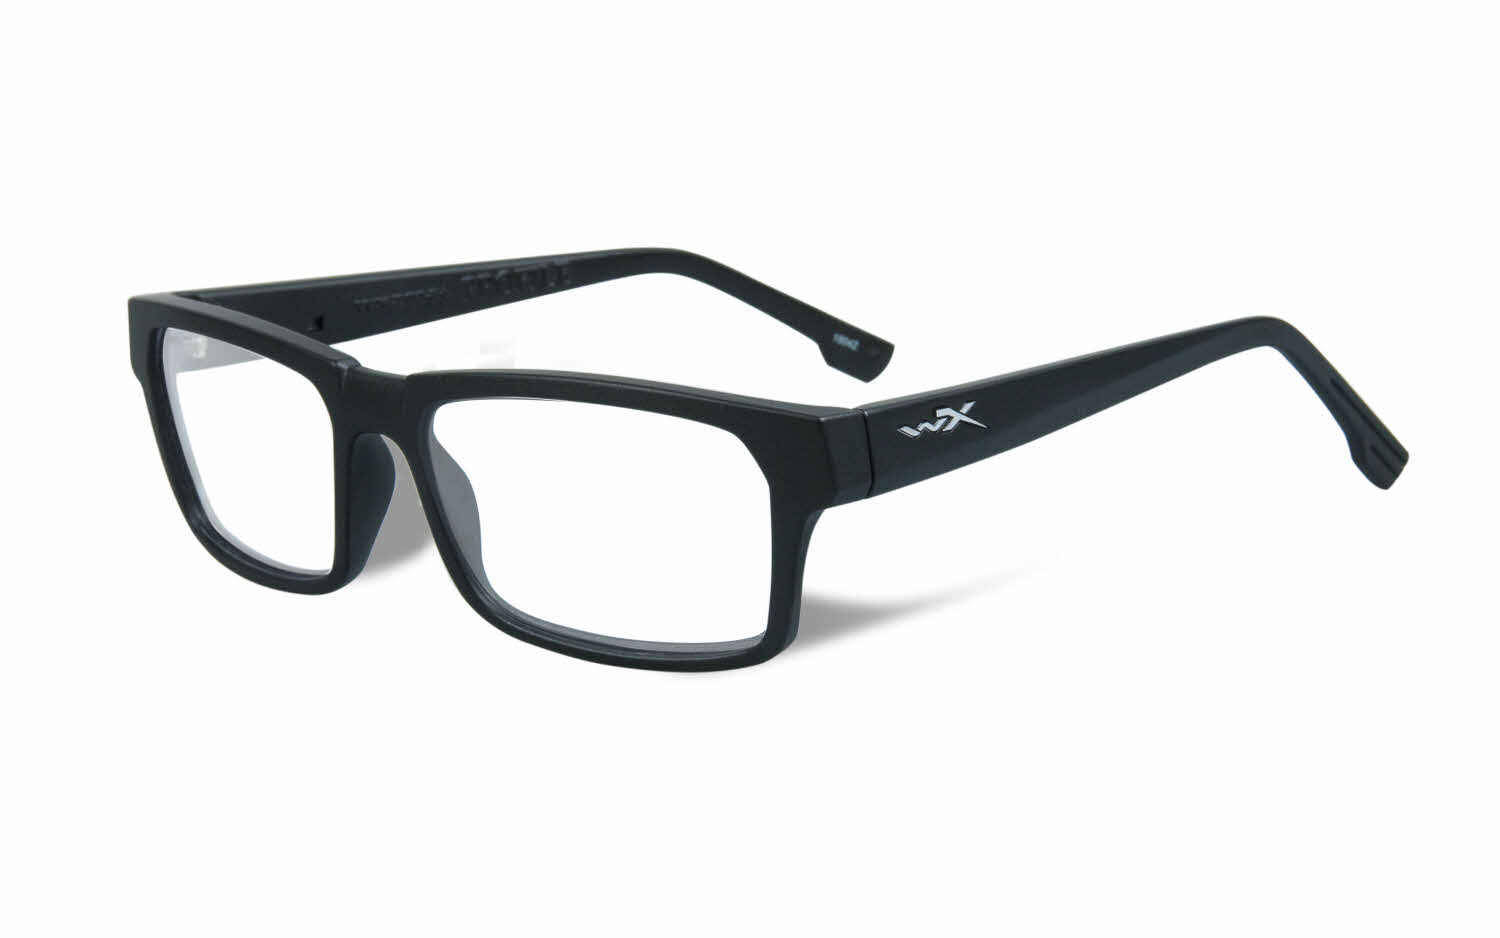 Wiley X WorkSight WX Profile Eyeglasses